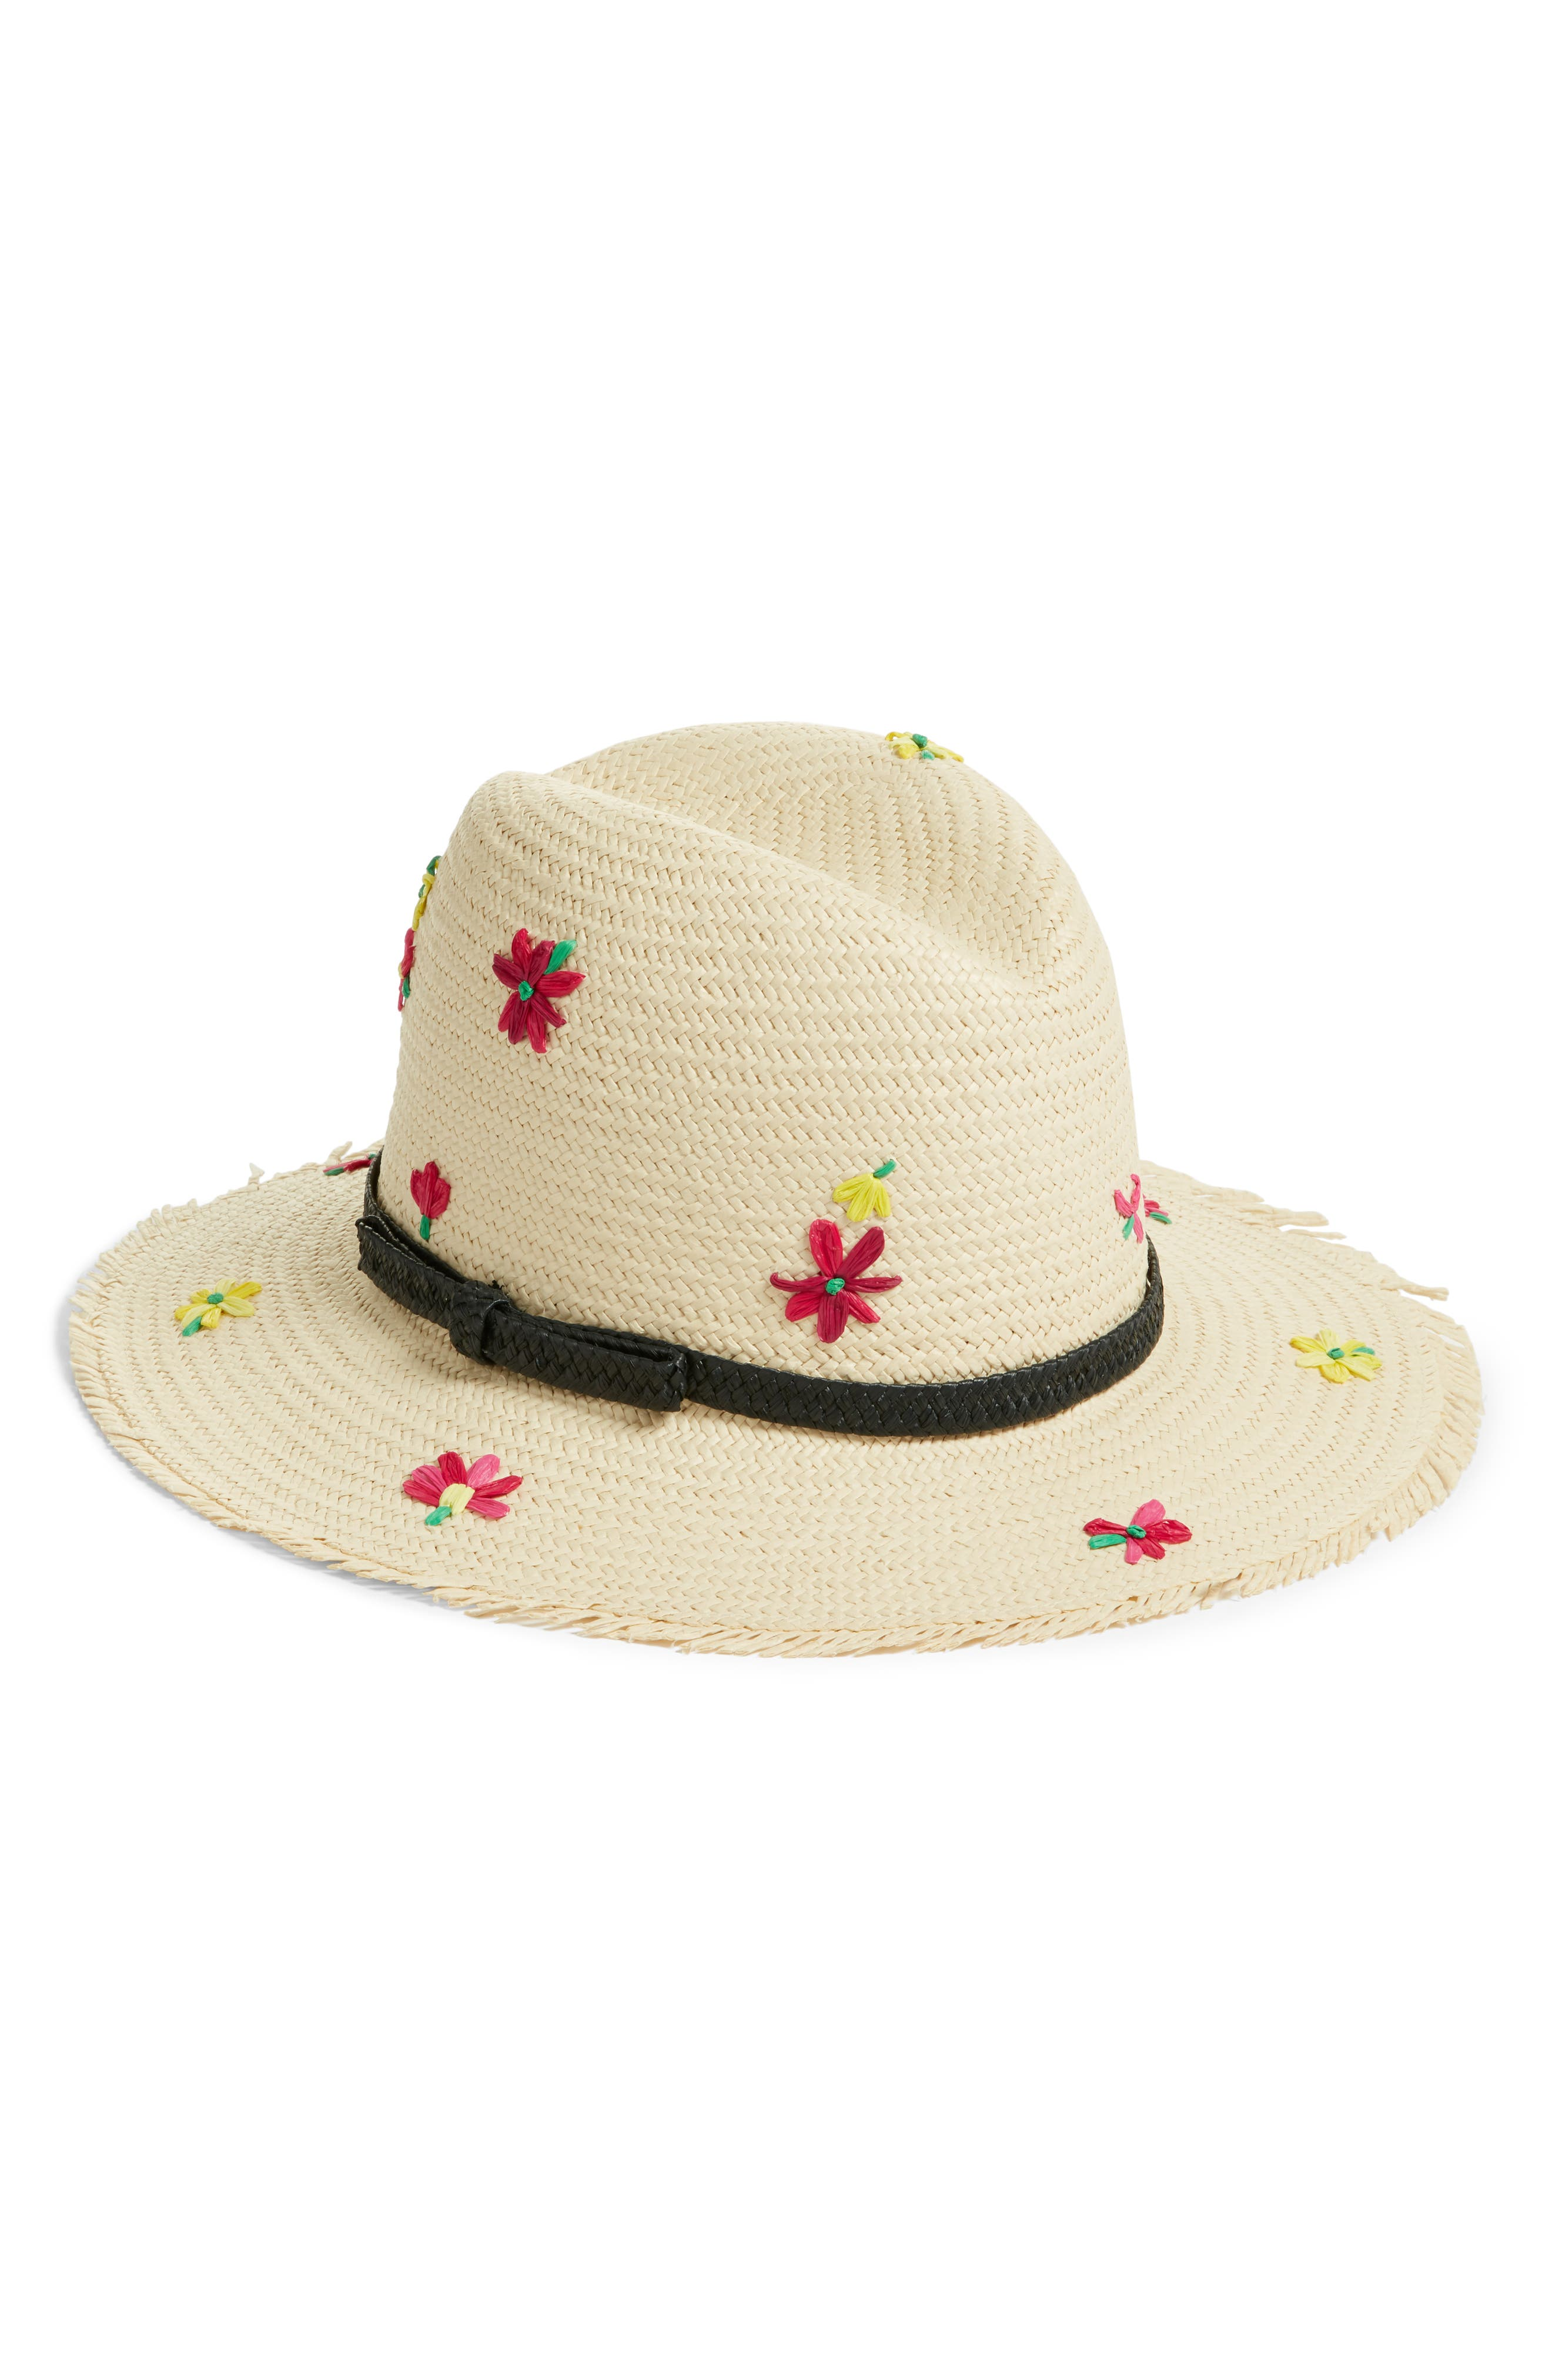 ab6f0a0331261 Kate Spade New York Hats for Women